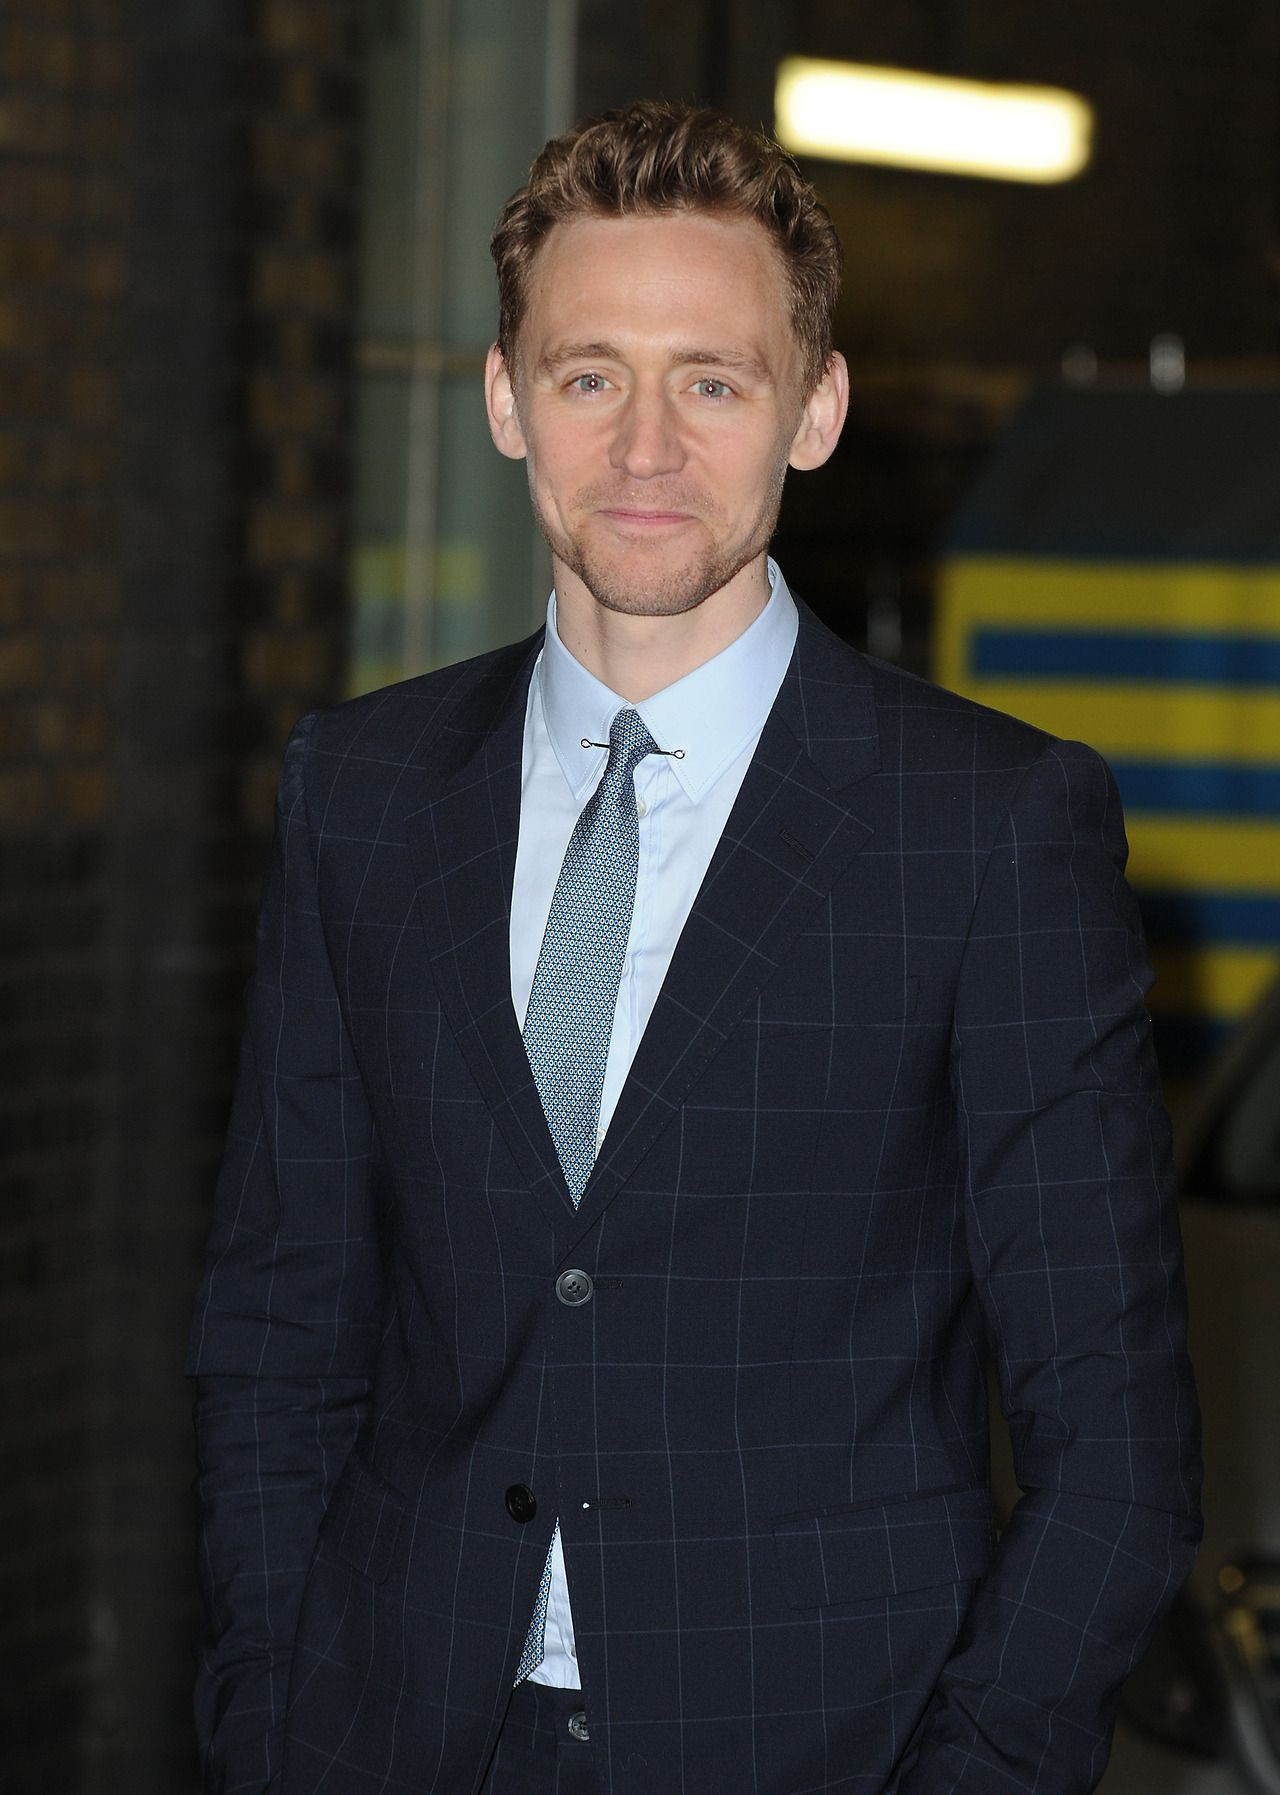 Tom Hiddleston pictured at the ITV studios on April 11, 2013 in London, England.